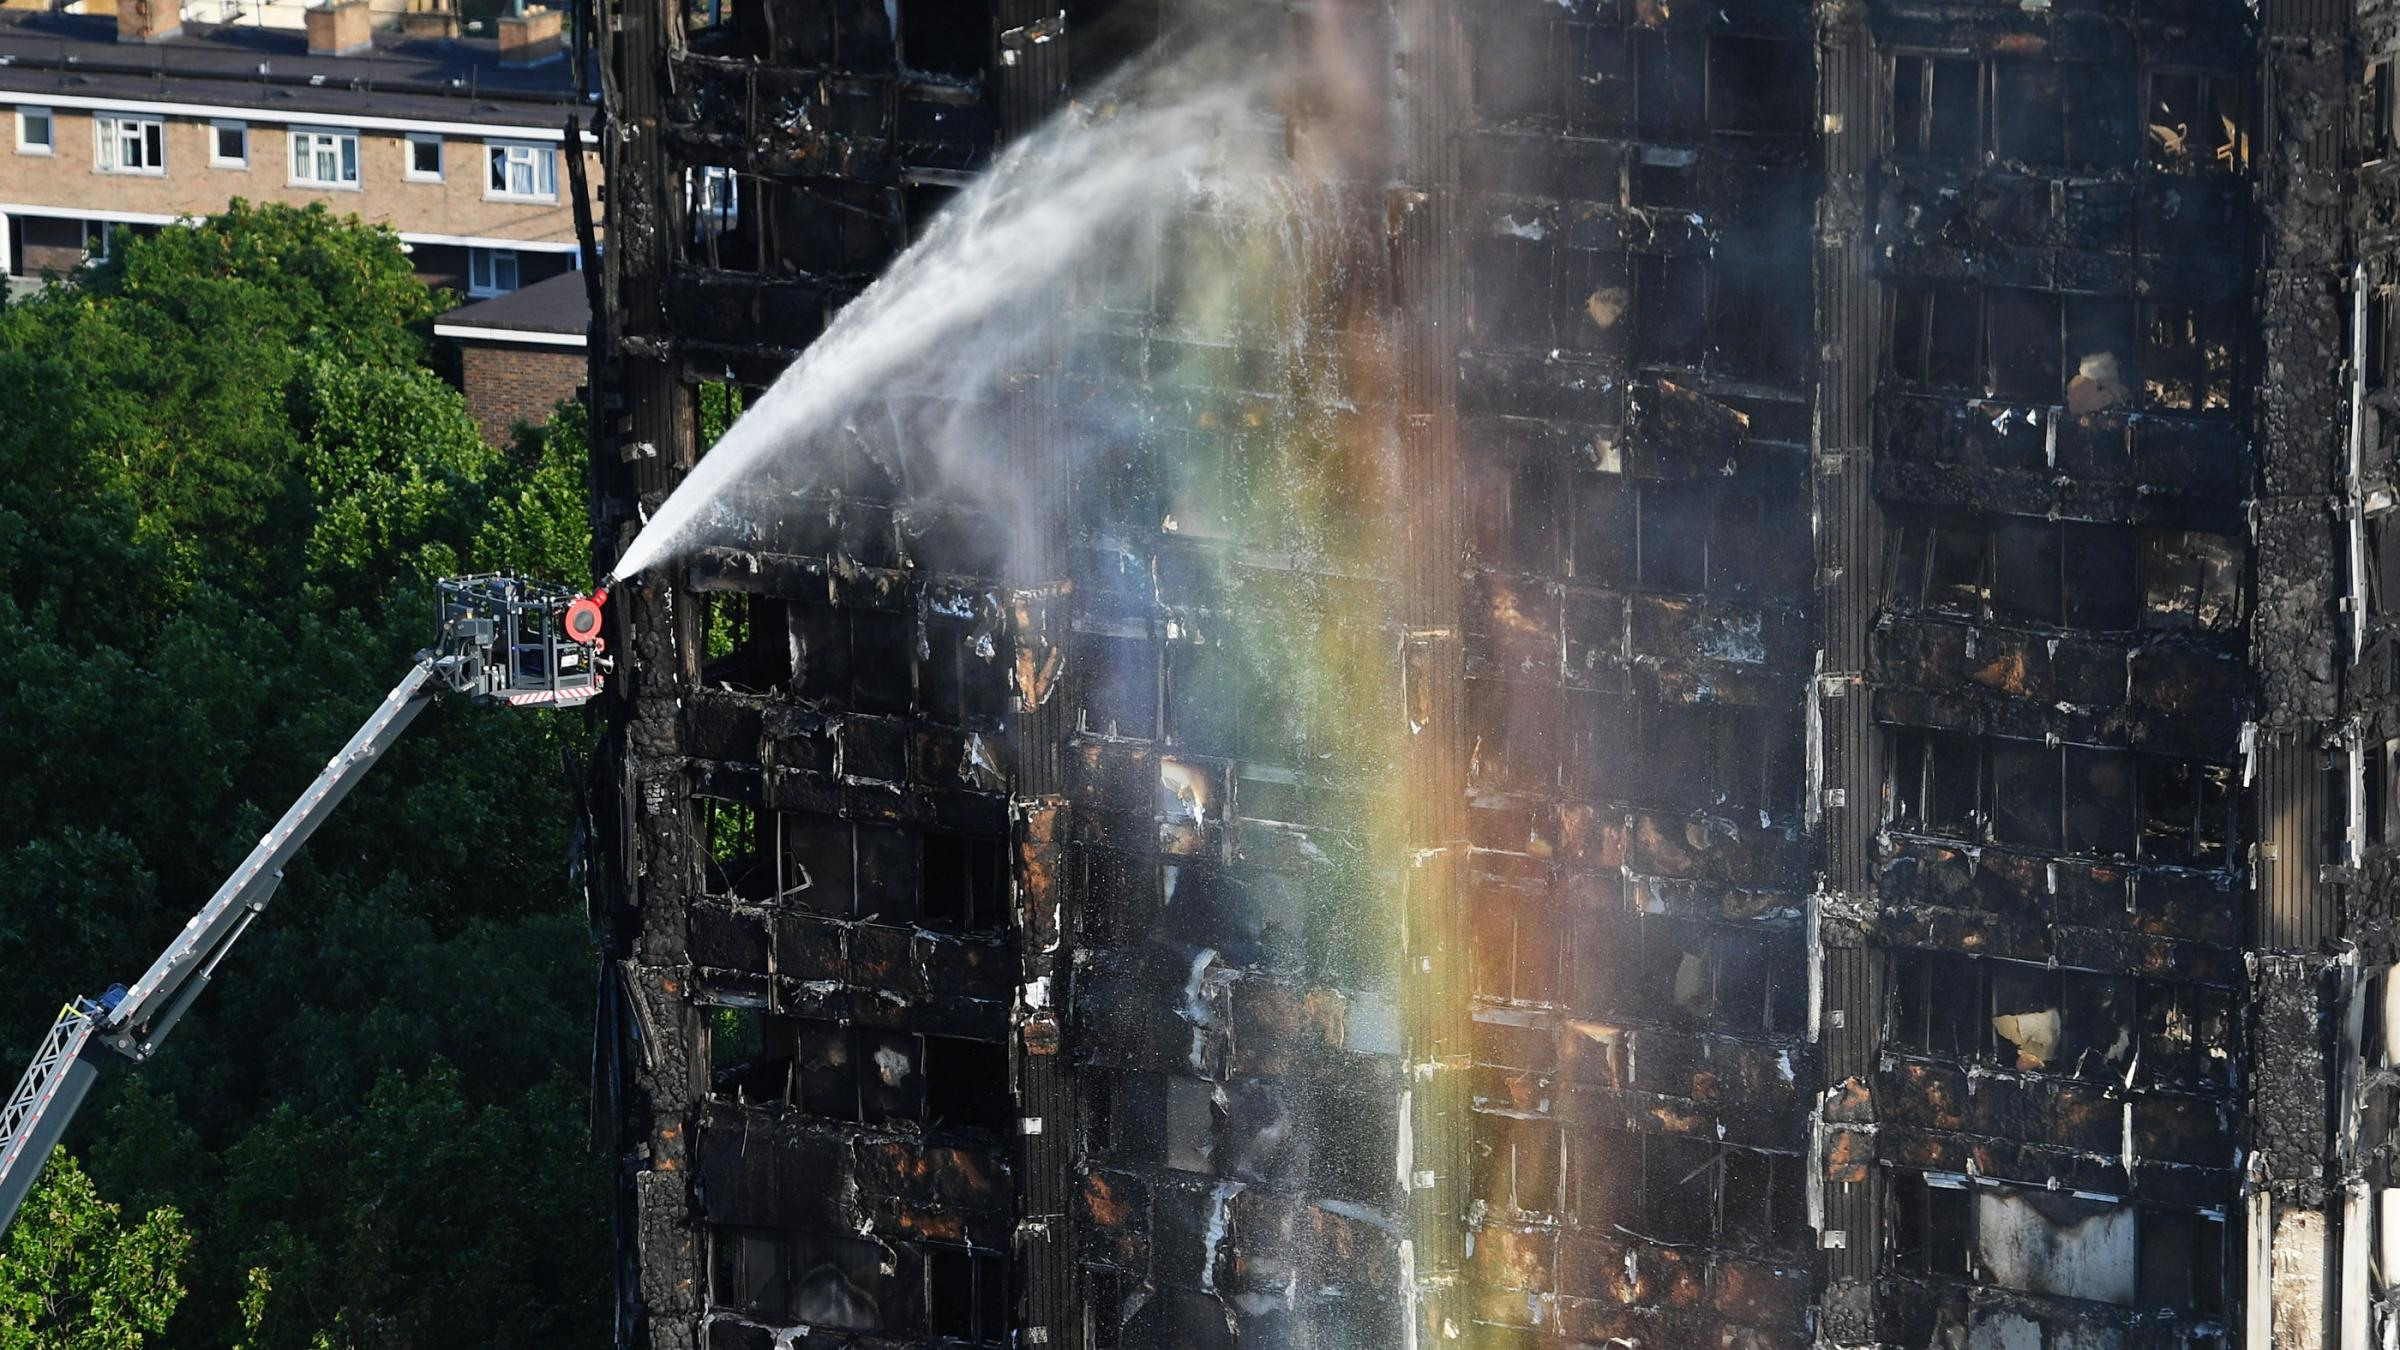 Death toll in London tower block fire rises to 17